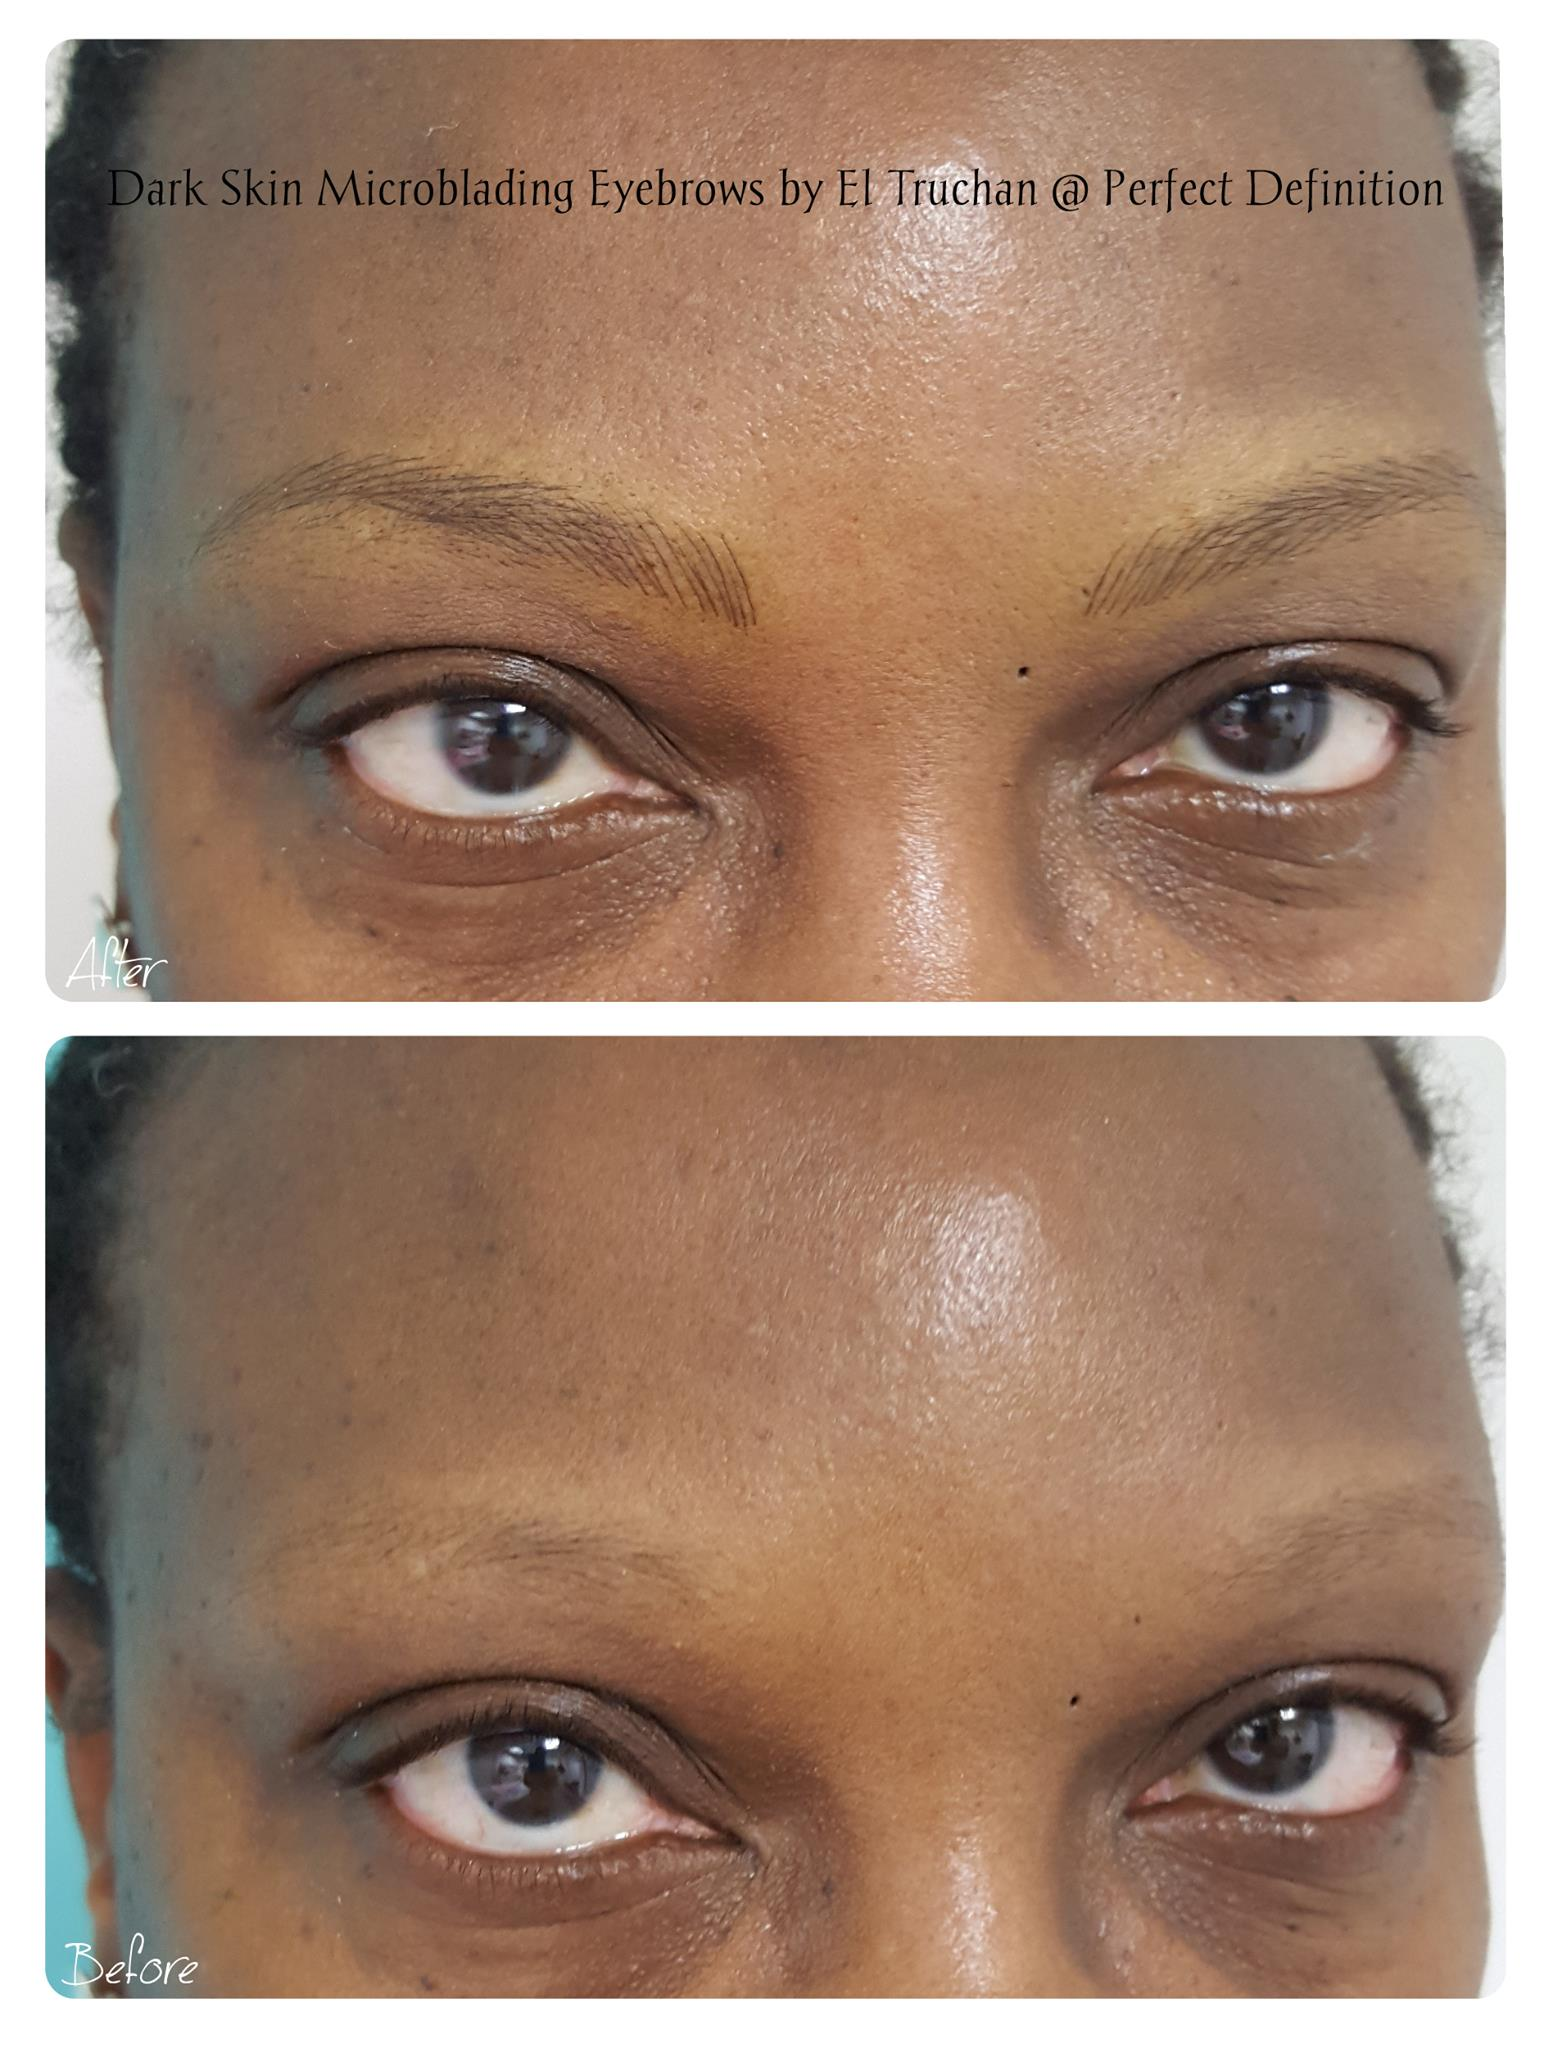 Dark Skin Microblading Eyebrows by El Tr